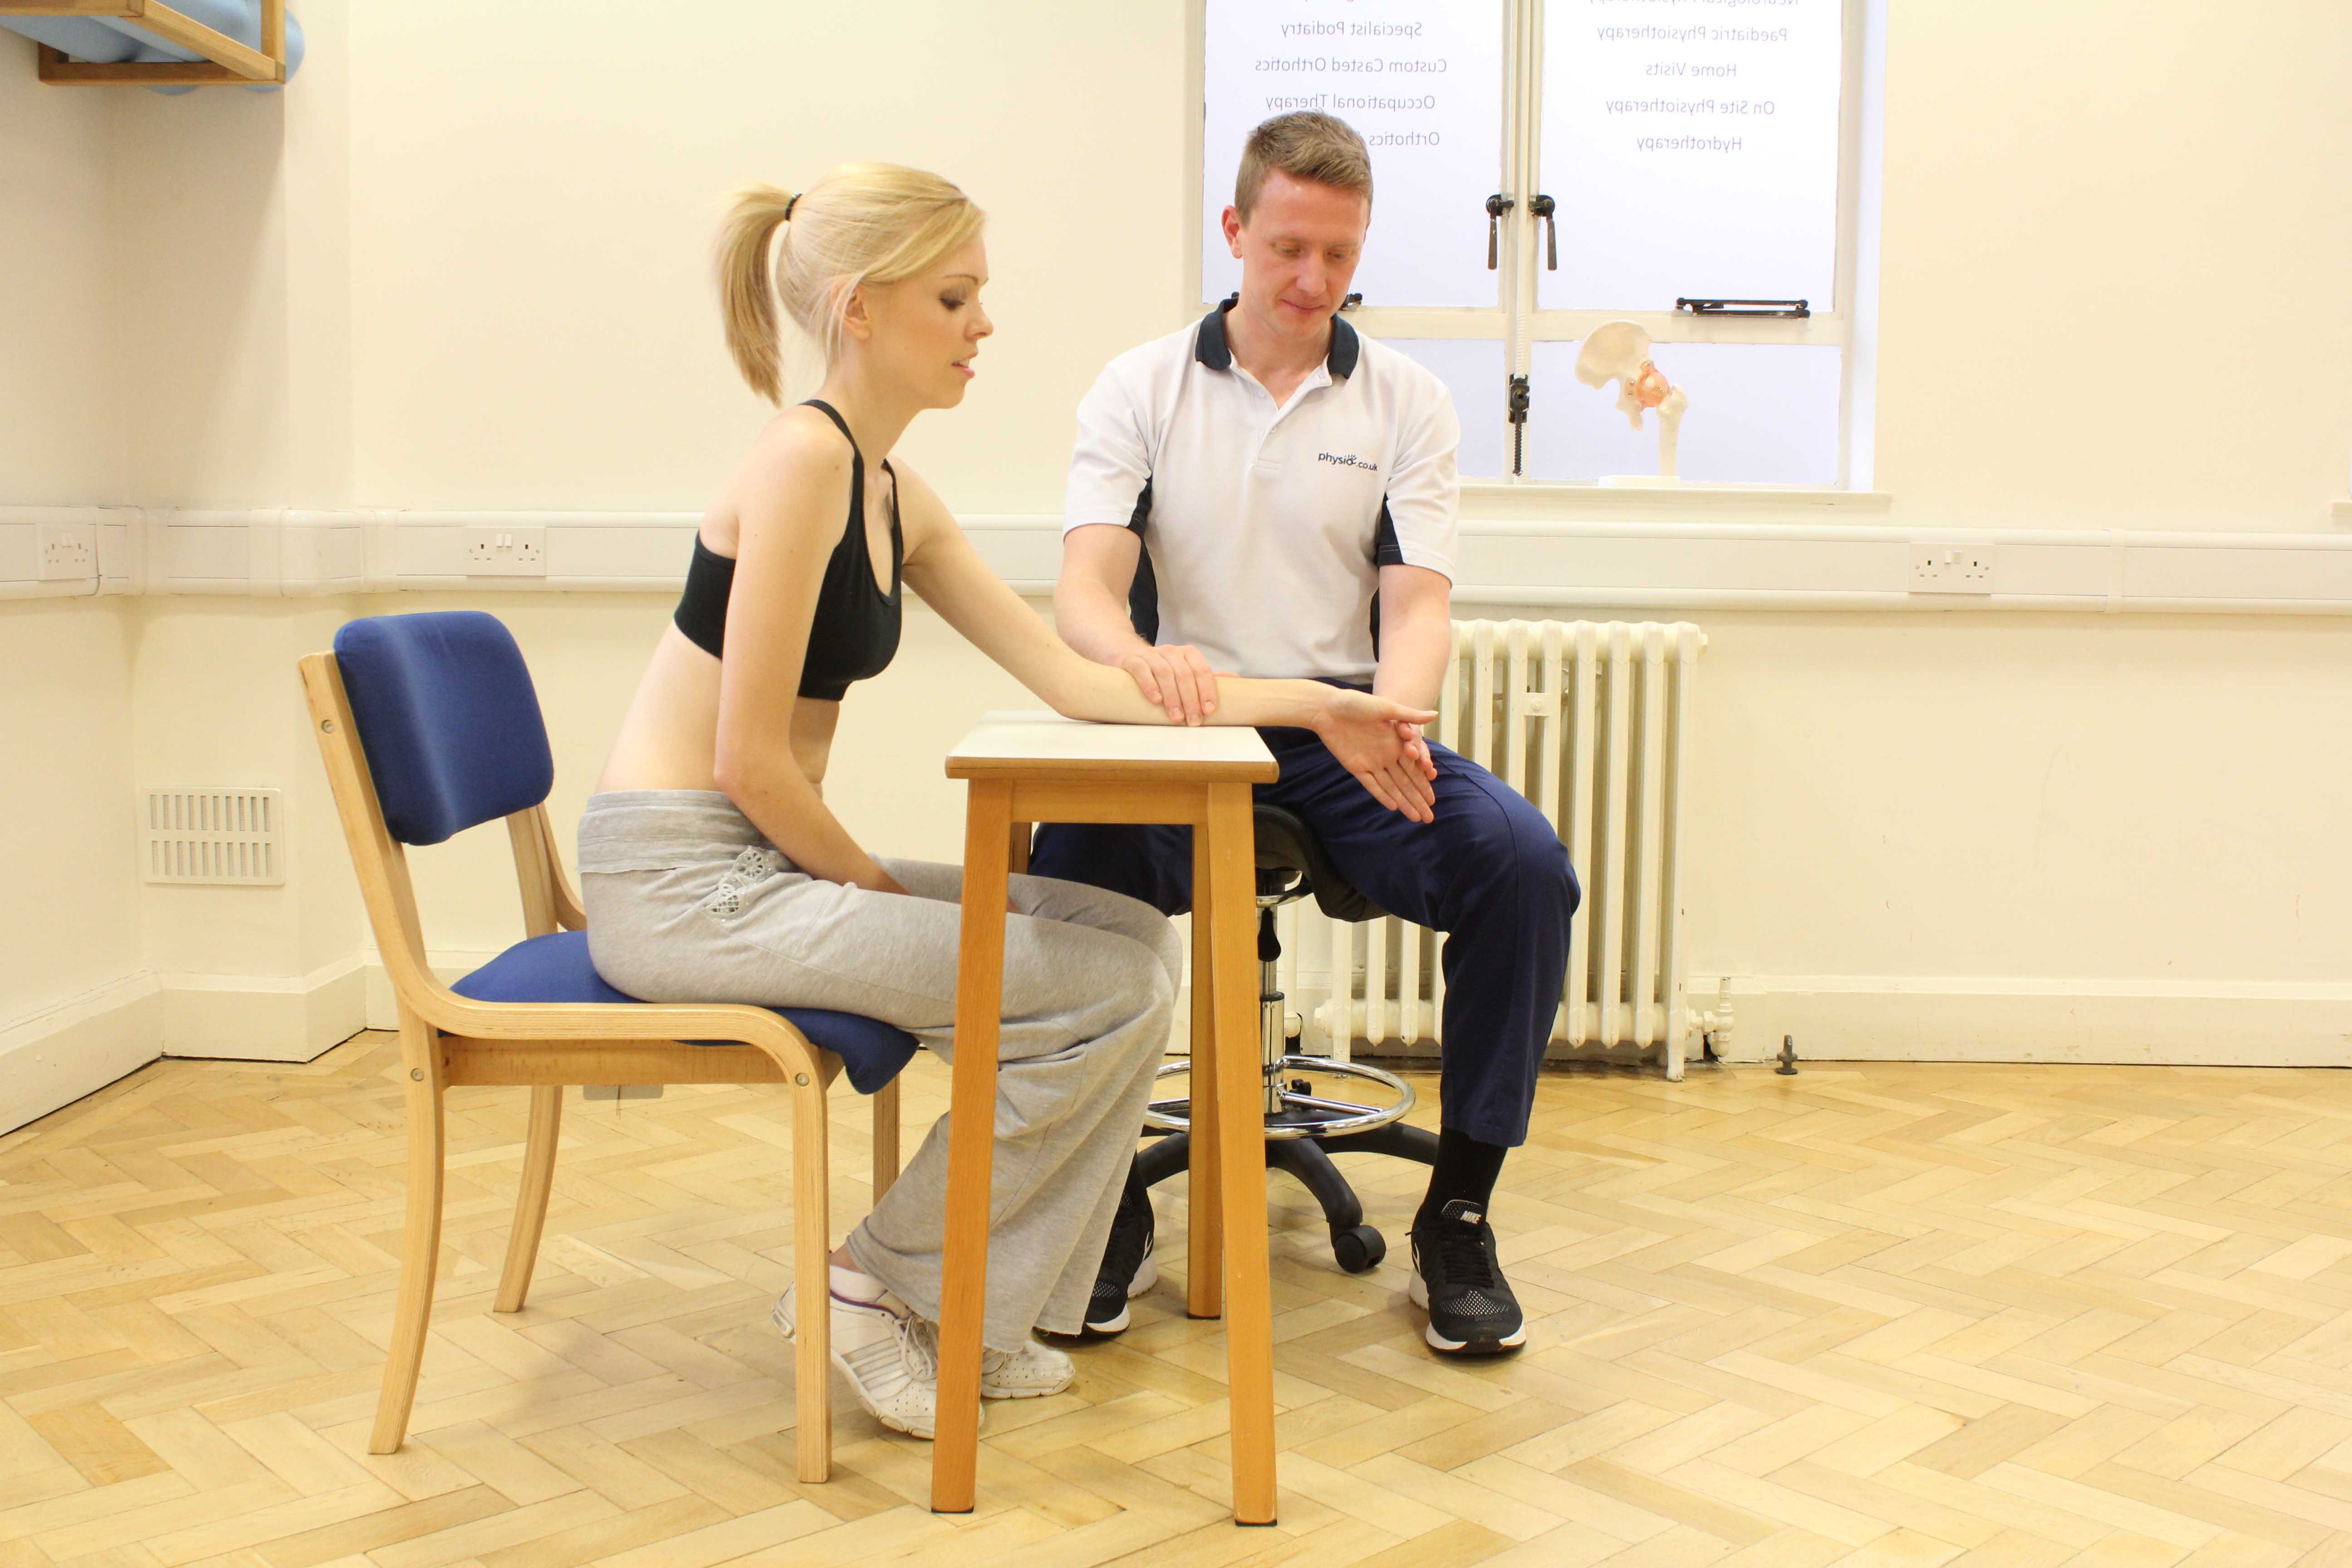 Physiotherapist assisted lateral deviation of the wrist stretches